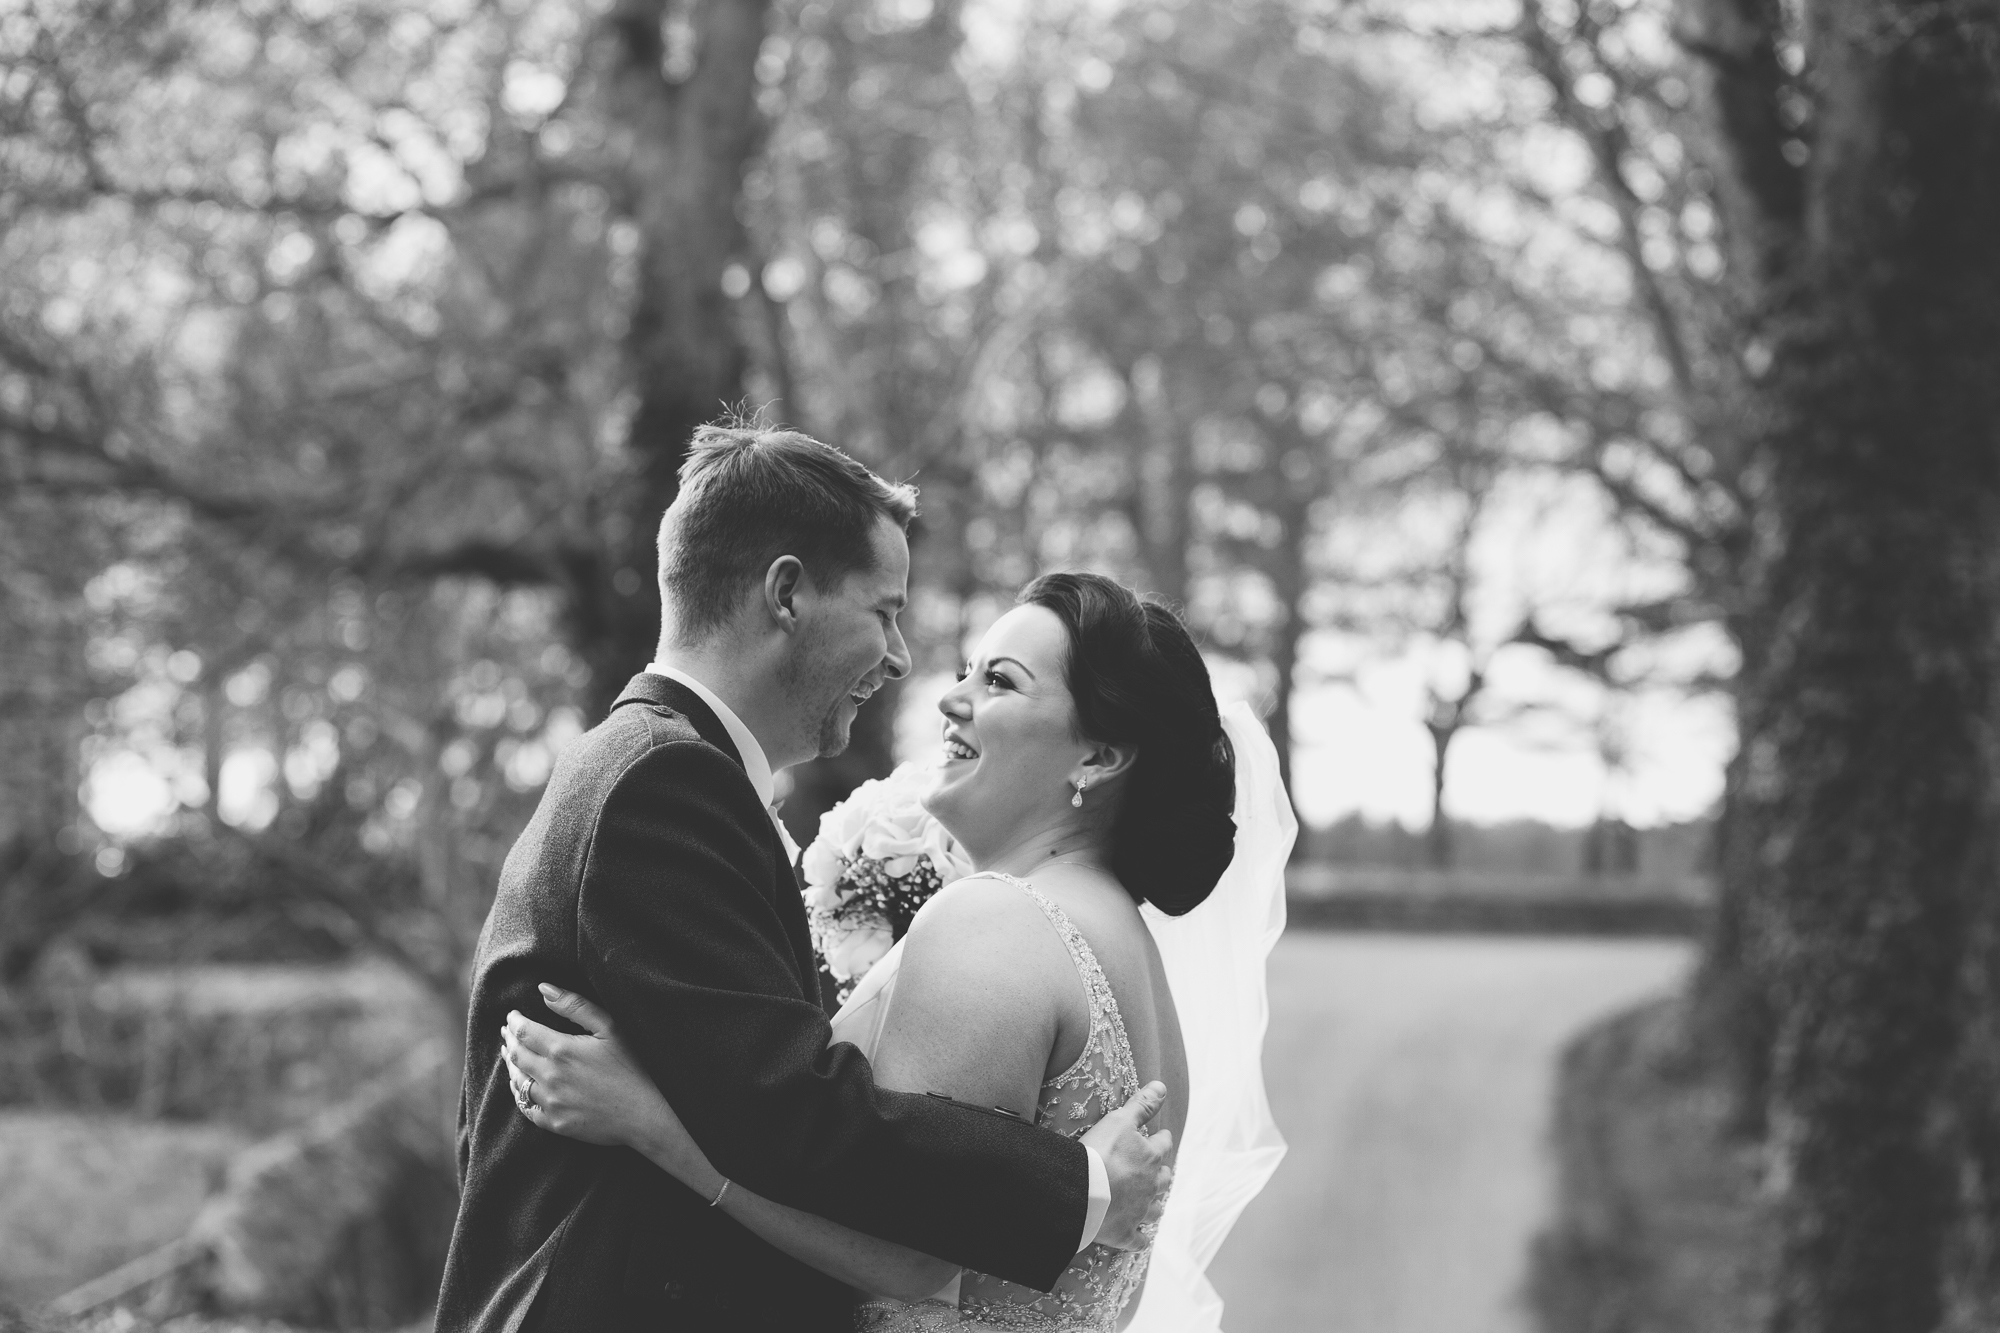 durn house wedding, durn house wedding photography, vivienne Elizabeth photography